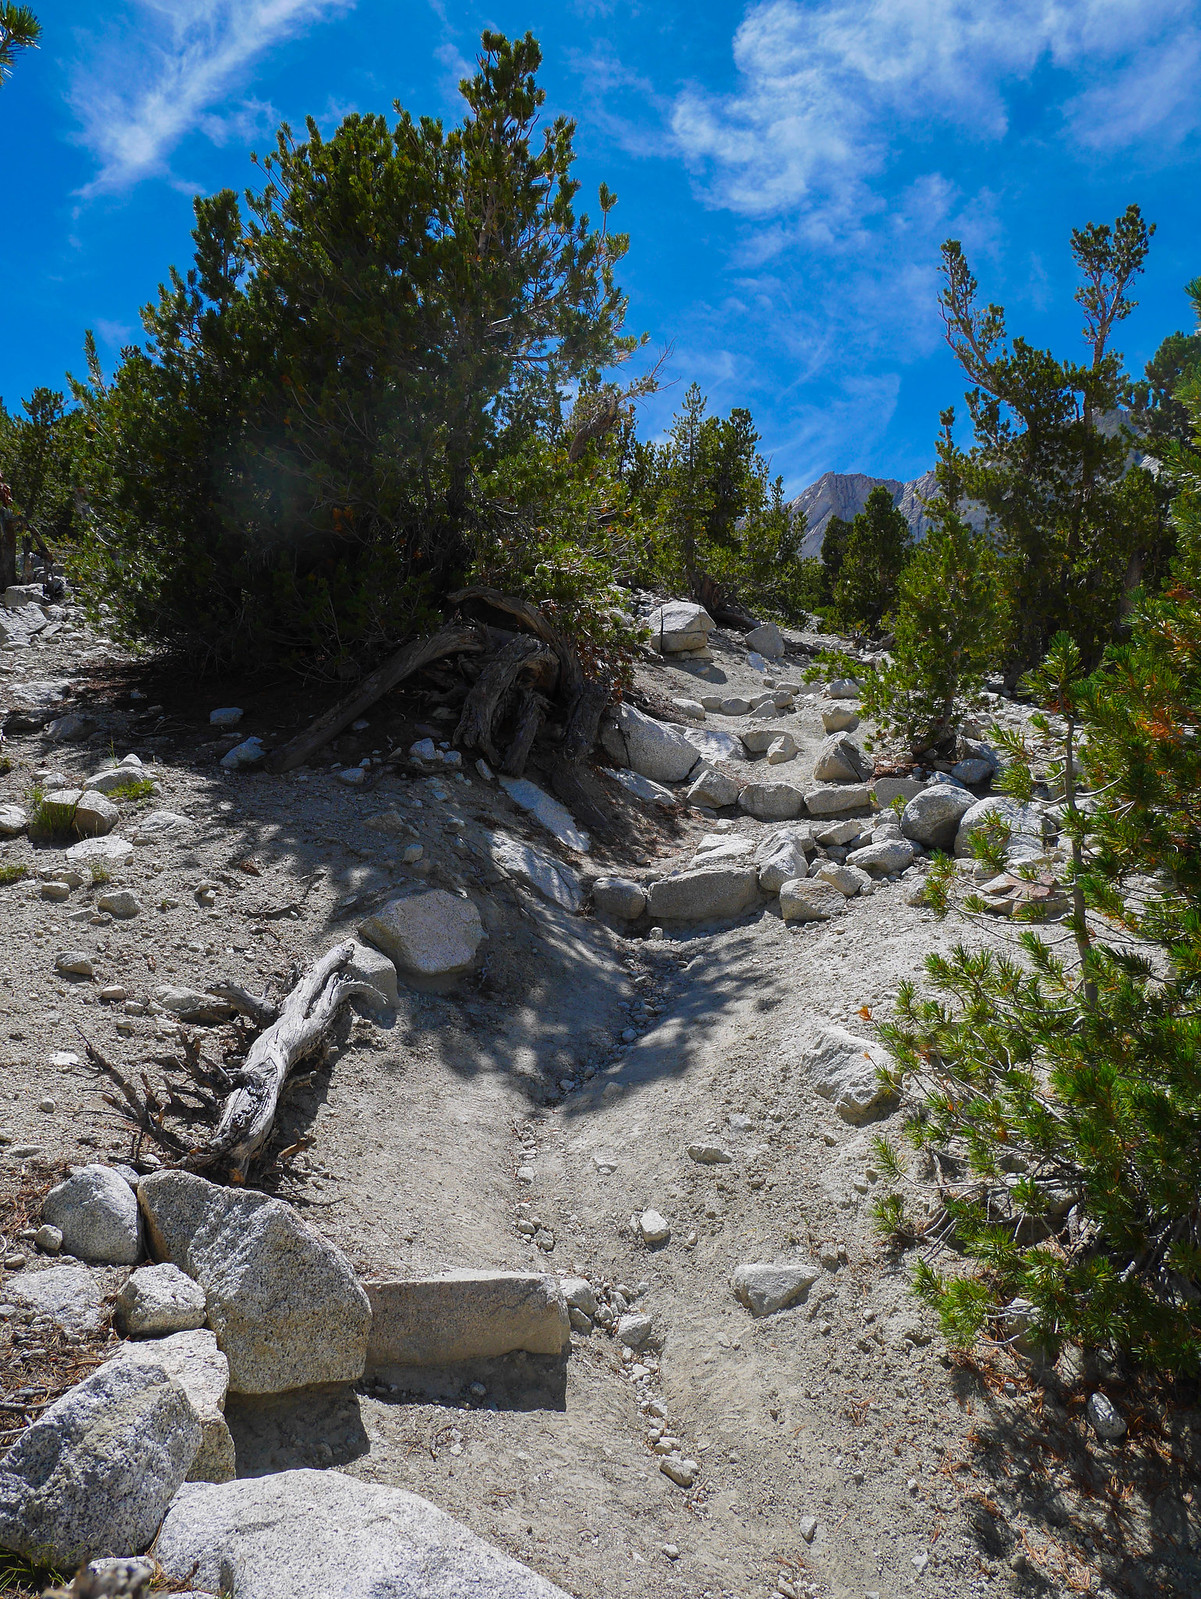 Met the Shepherd's pass trail, oh you wanted to be back on trail after all that talus? Here, just go STRAIGHT UP